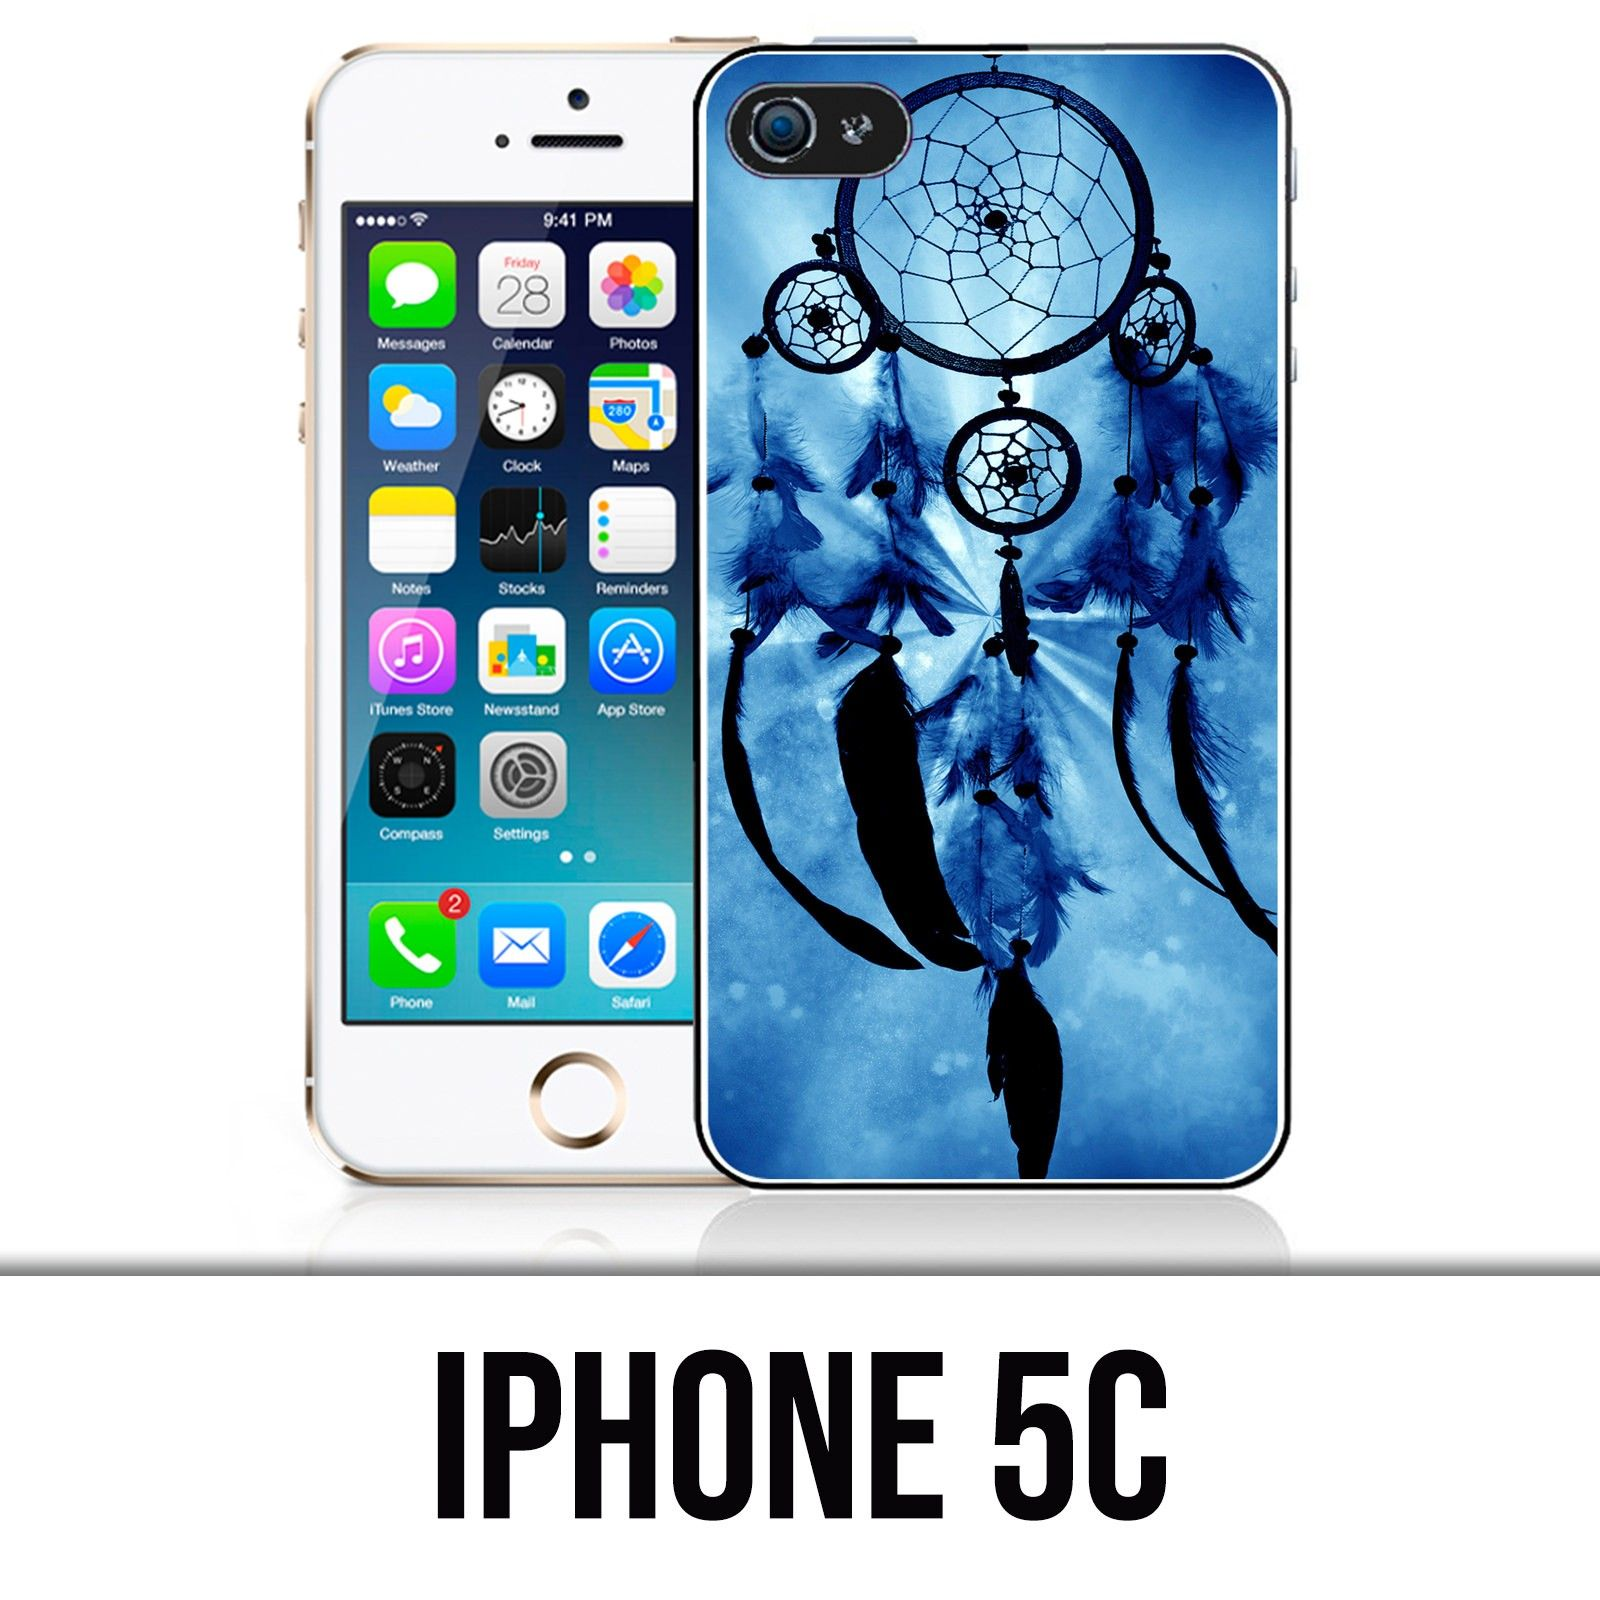 Coque iPhone 5C - Attrape Reve Bleu